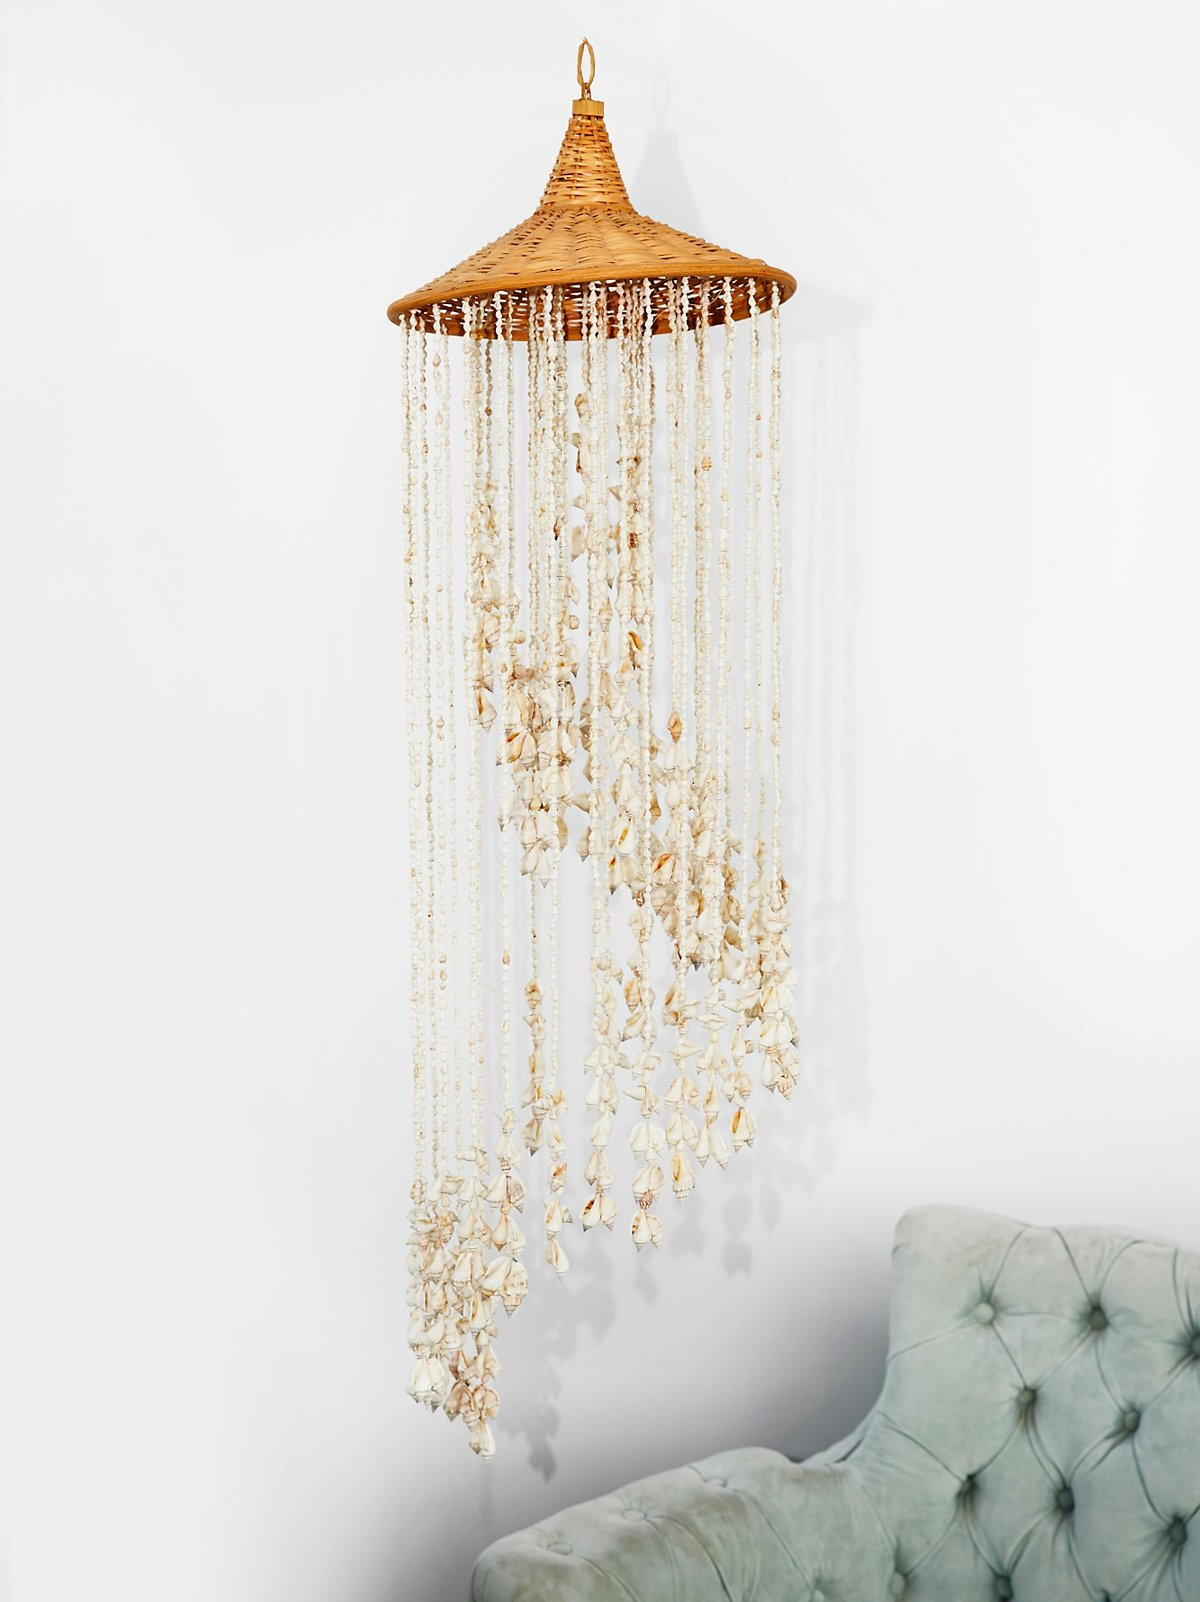 Vintage 1970s Shell Chandelier